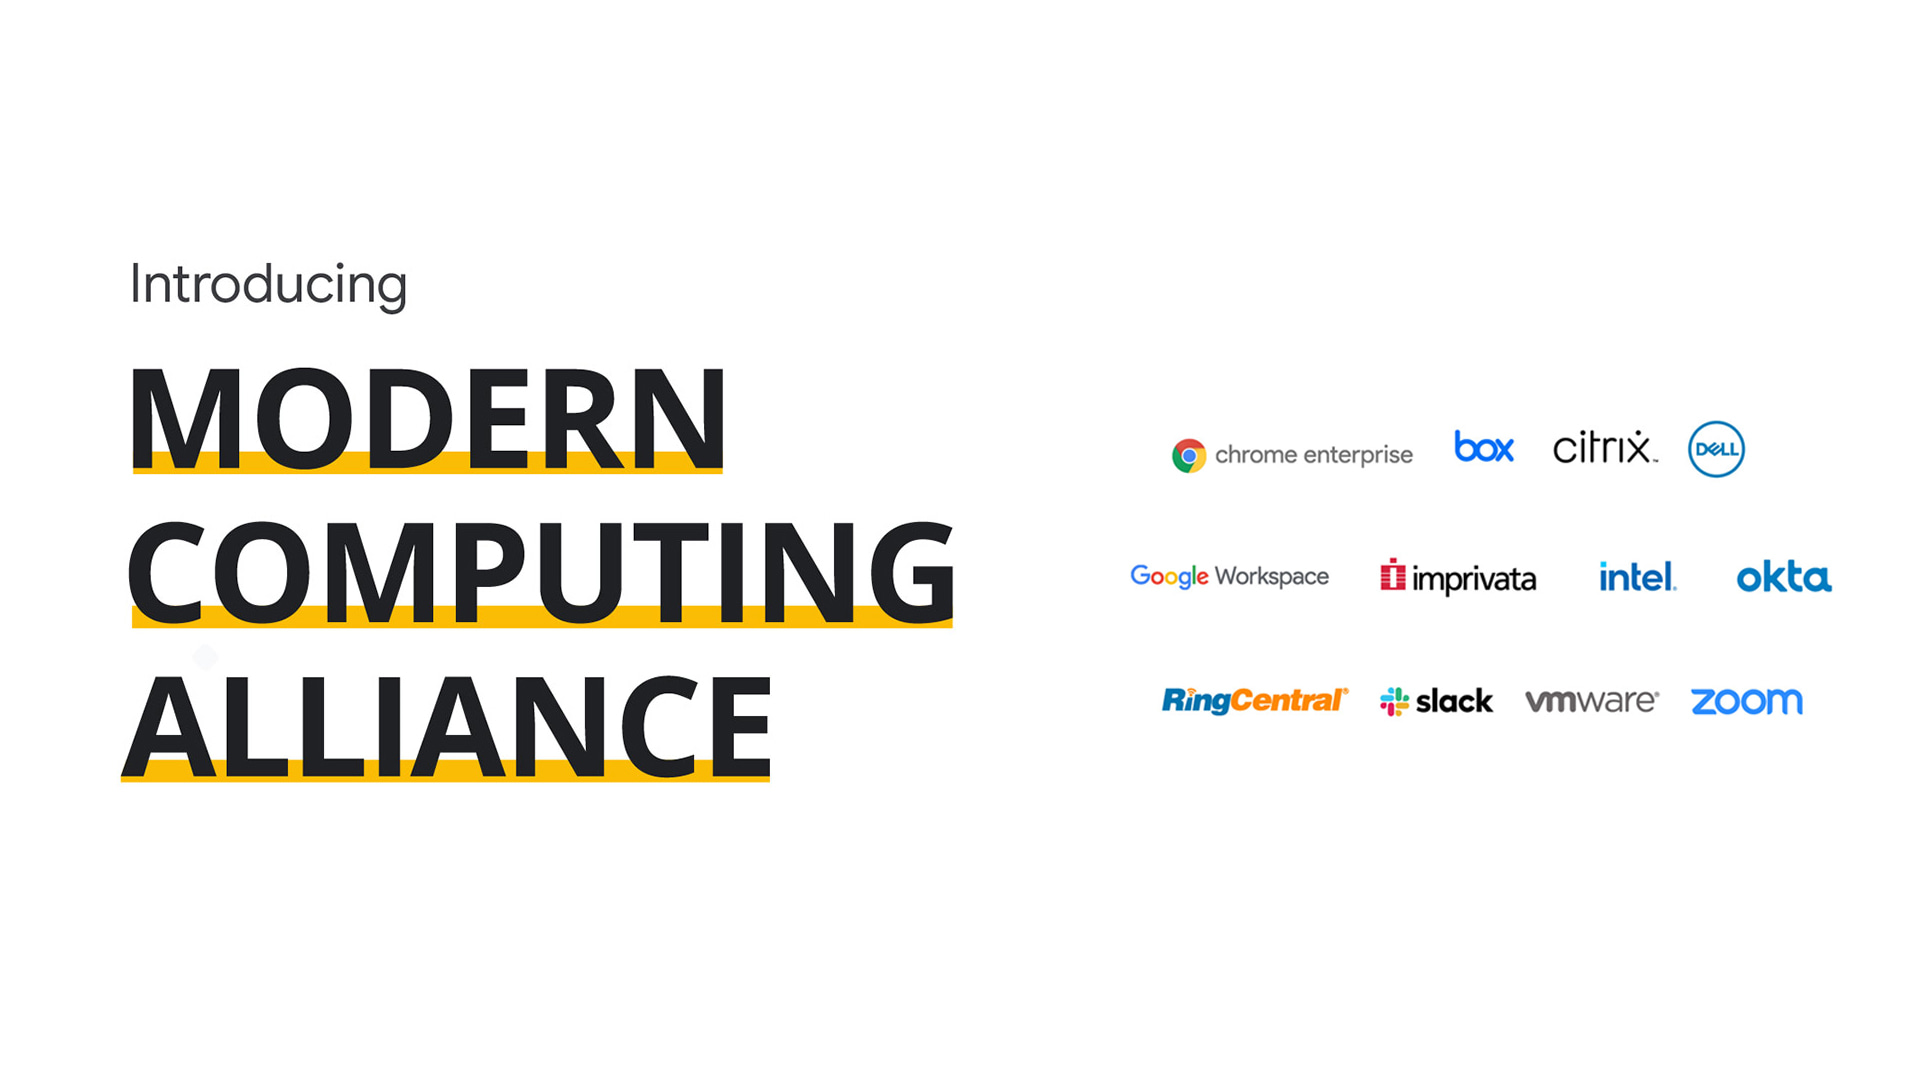 Google joins the Modern Computing Alliance and vows to help organizations transition to the cloud